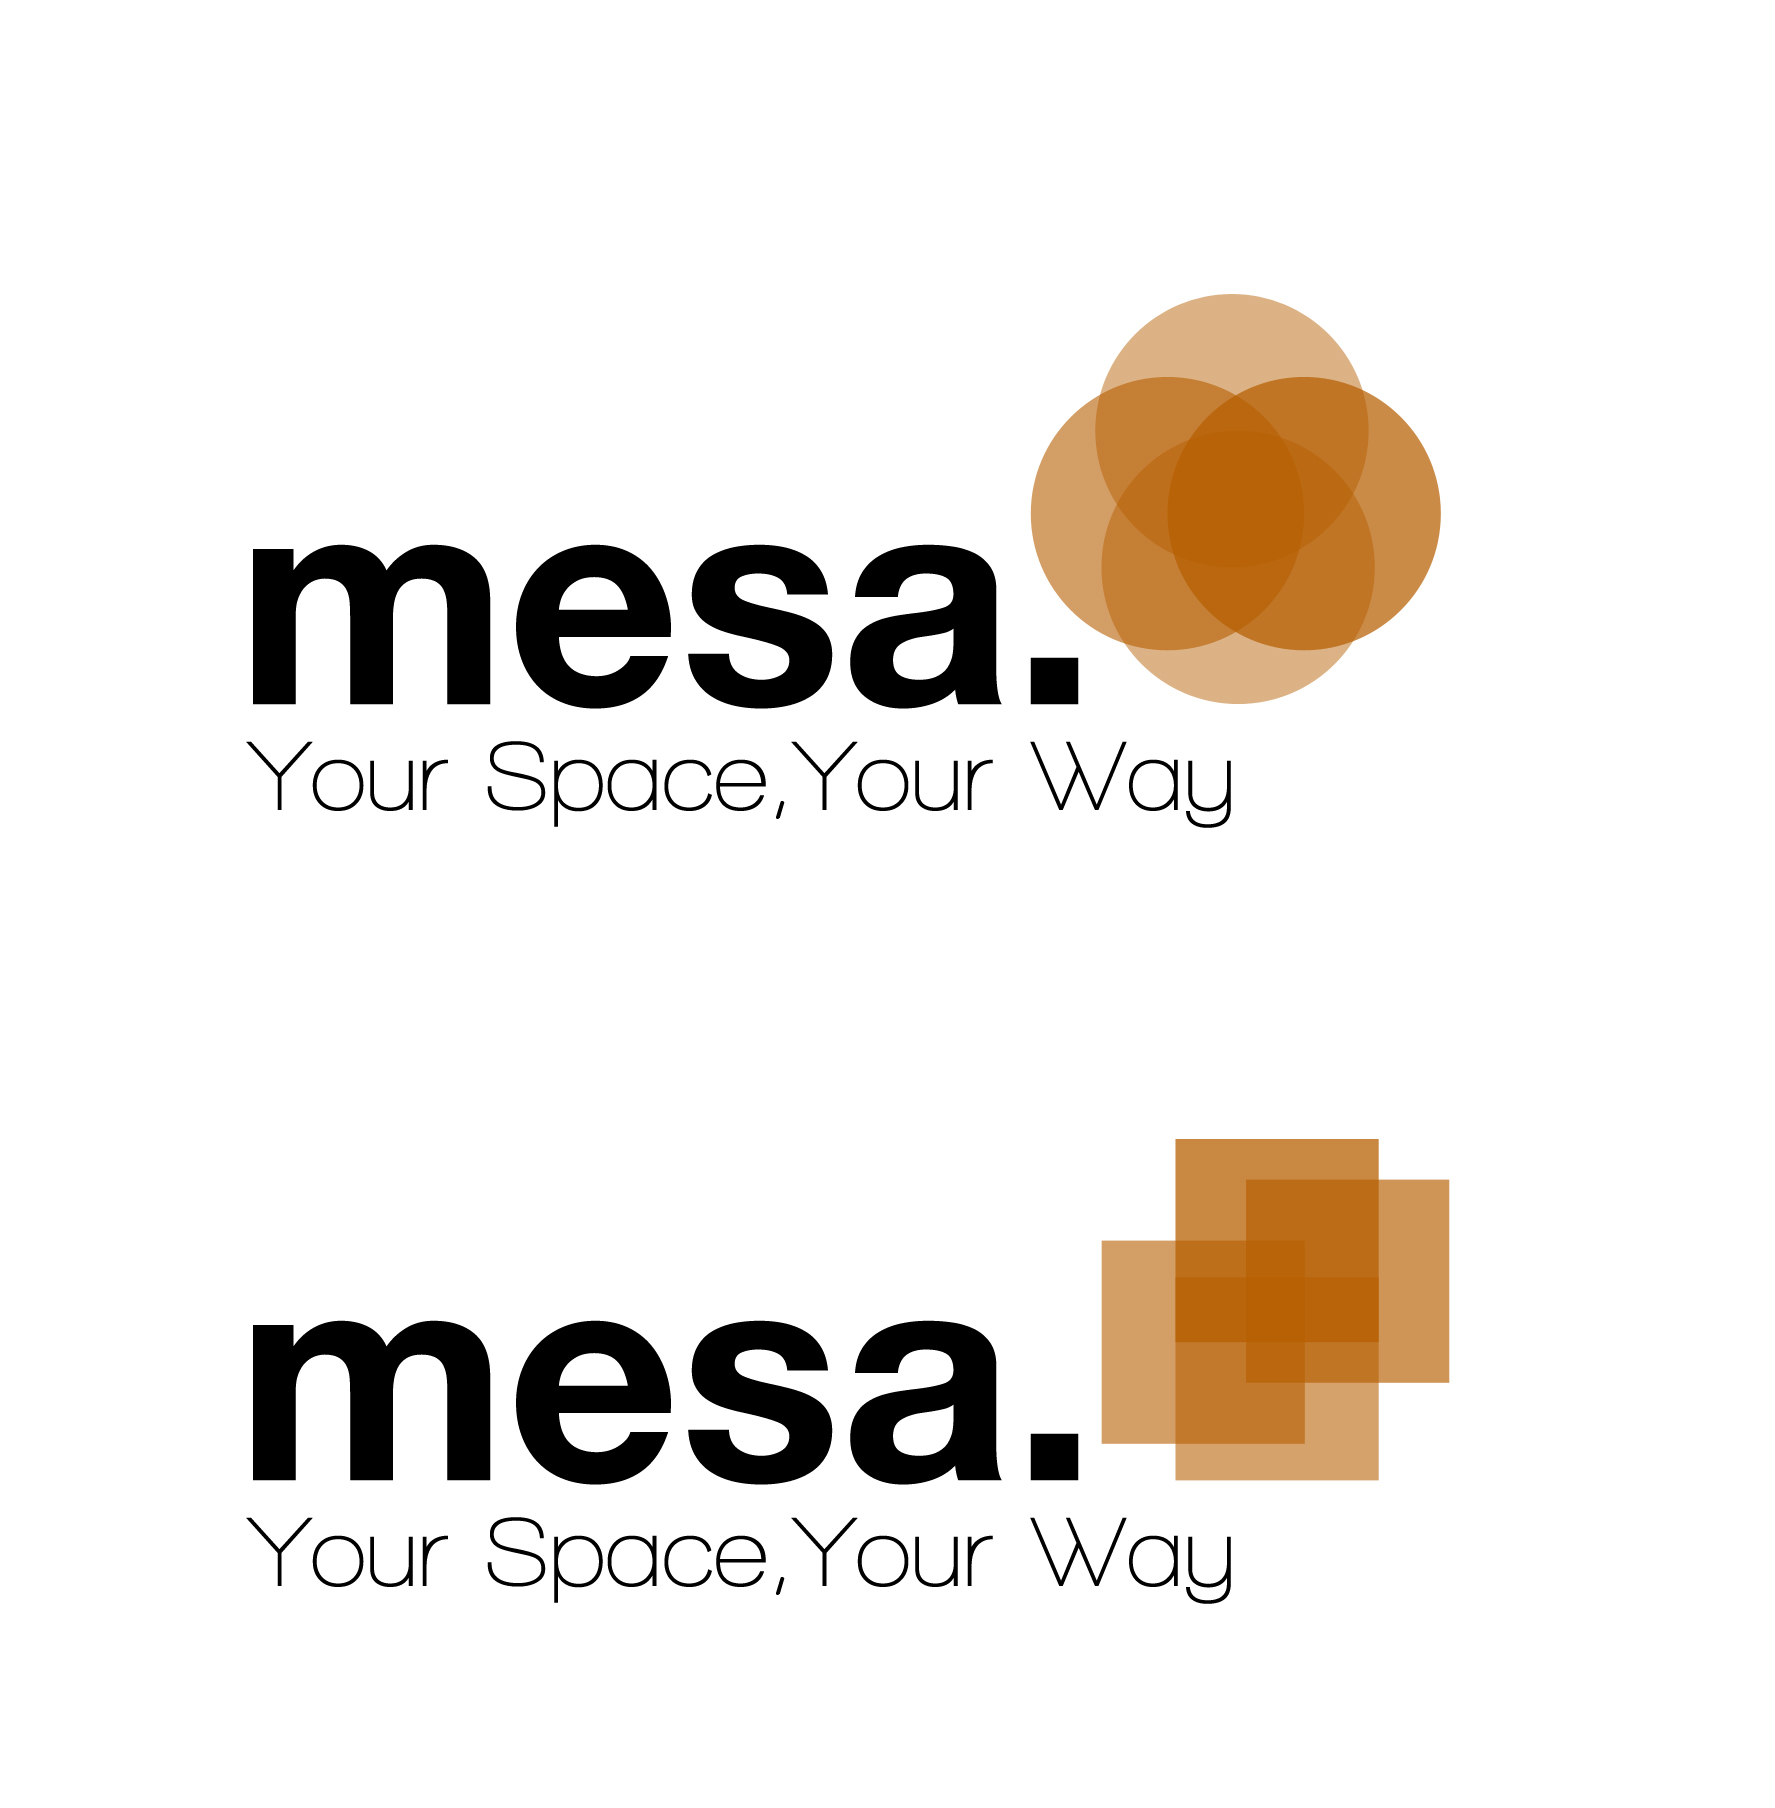 Logo Design by Lama Creative - Entry No. 5 in the Logo Design Contest Logo Design for Mesa.